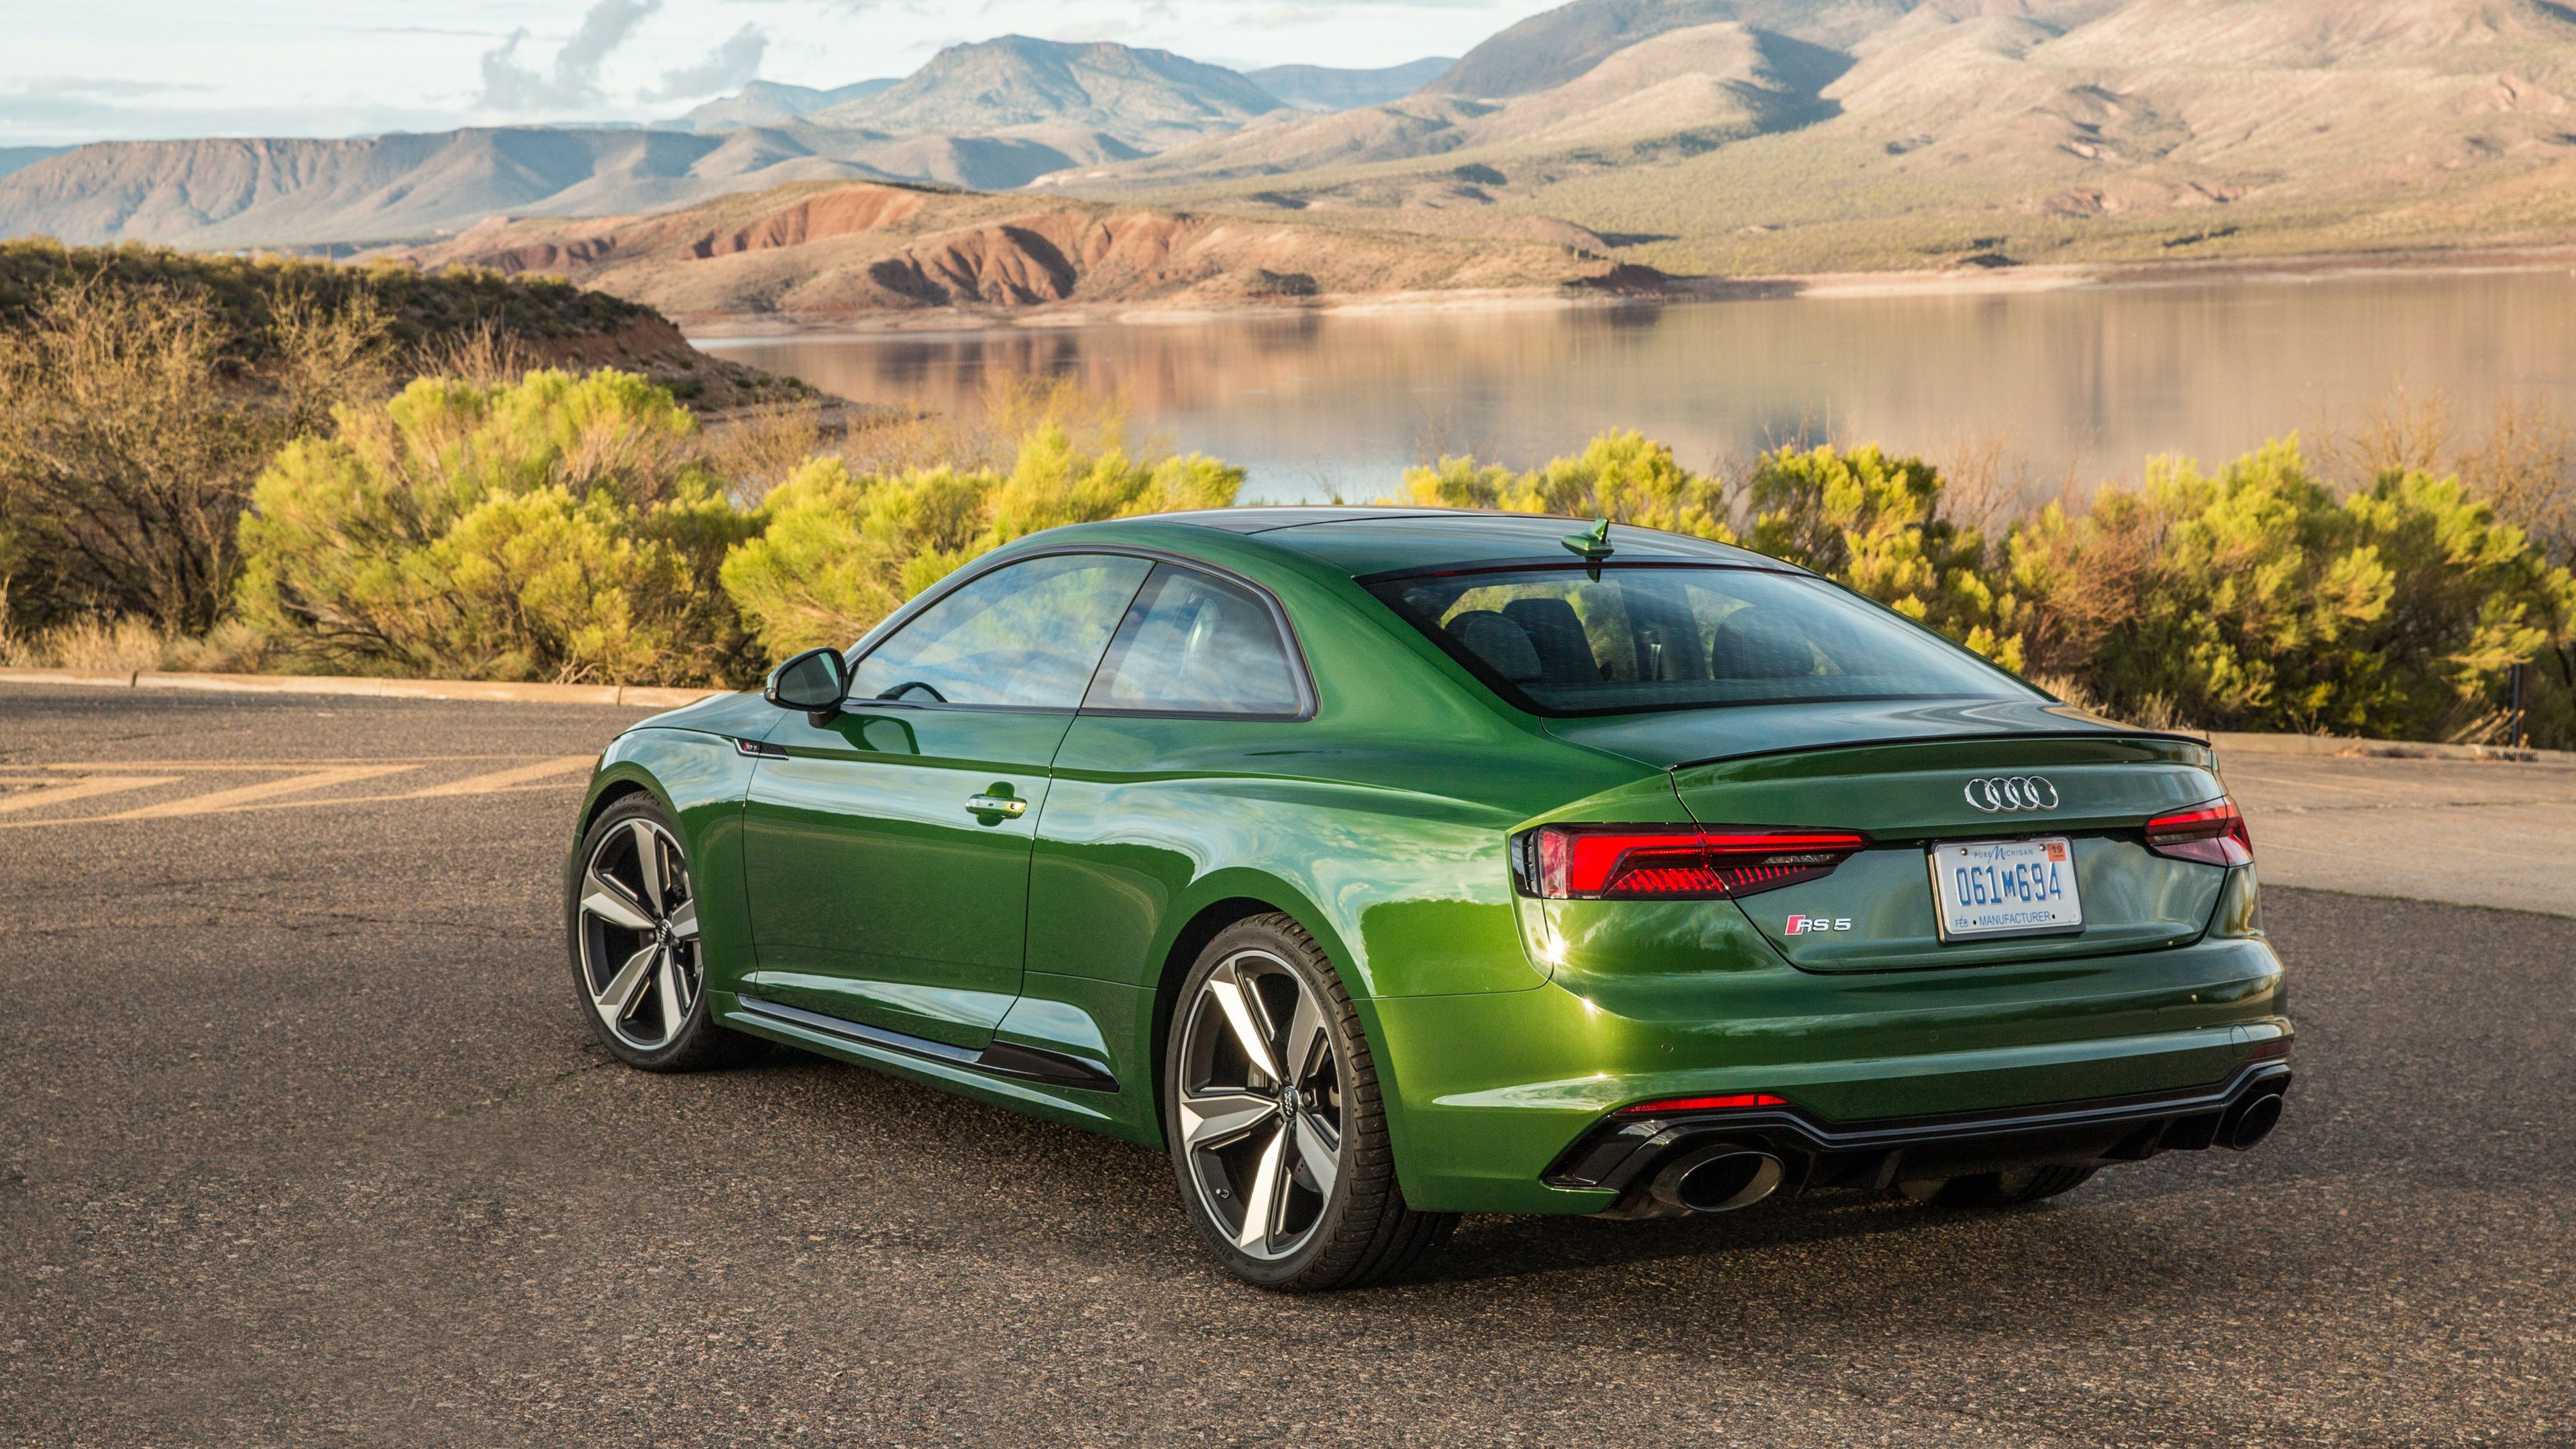 Audi Rs5 Coupe 4k 2018 Hd Wallpapers Cars Wallpapers Audi